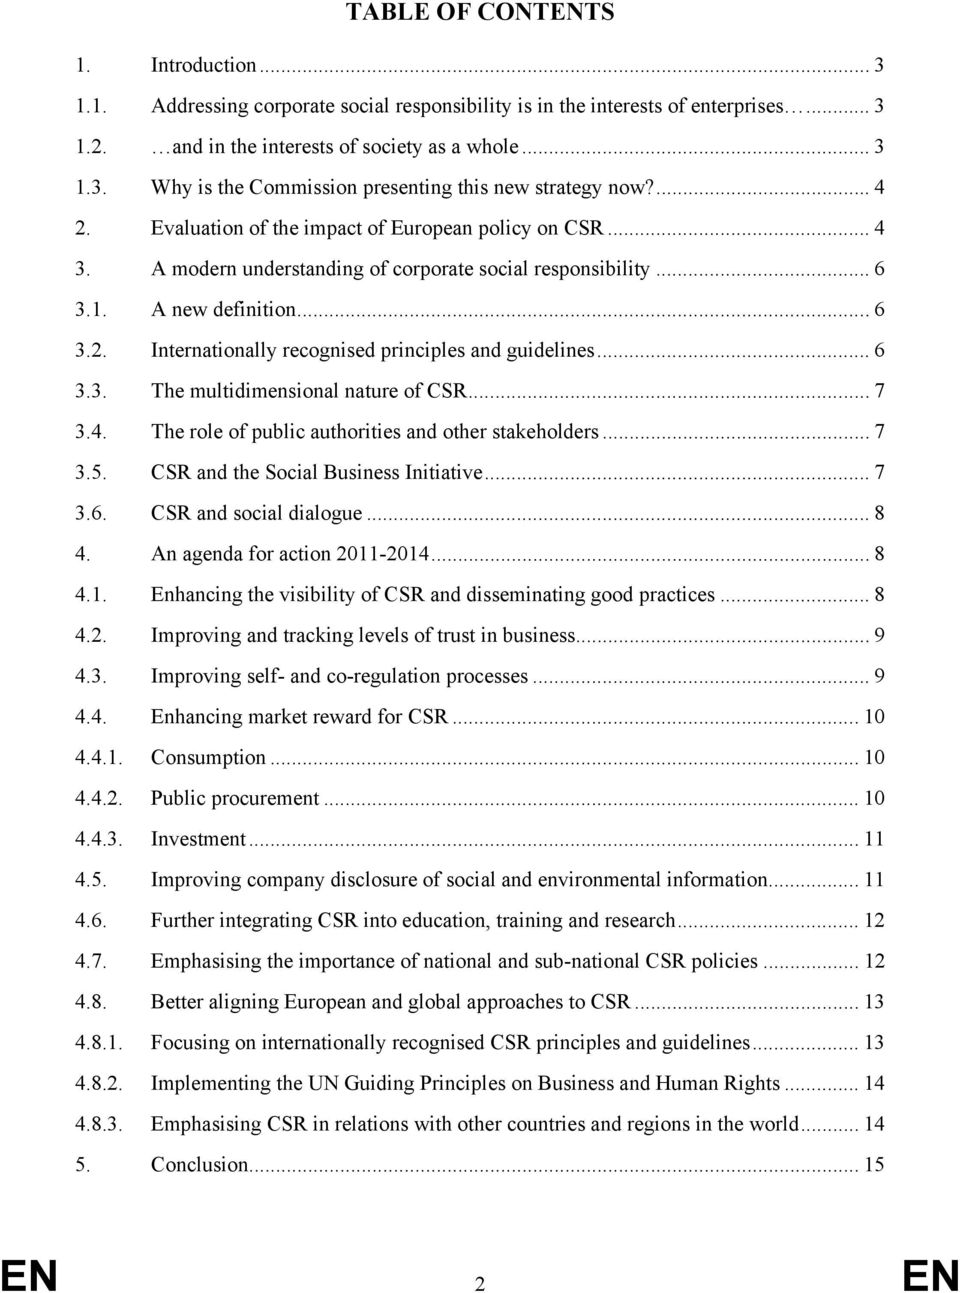 .. 6 3.3. The multidimensional nature of CSR... 7 3.4. The role of public authorities and other stakeholders... 7 3.5. CSR and the Social Business Initiative... 7 3.6. CSR and social dialogue... 8 4.